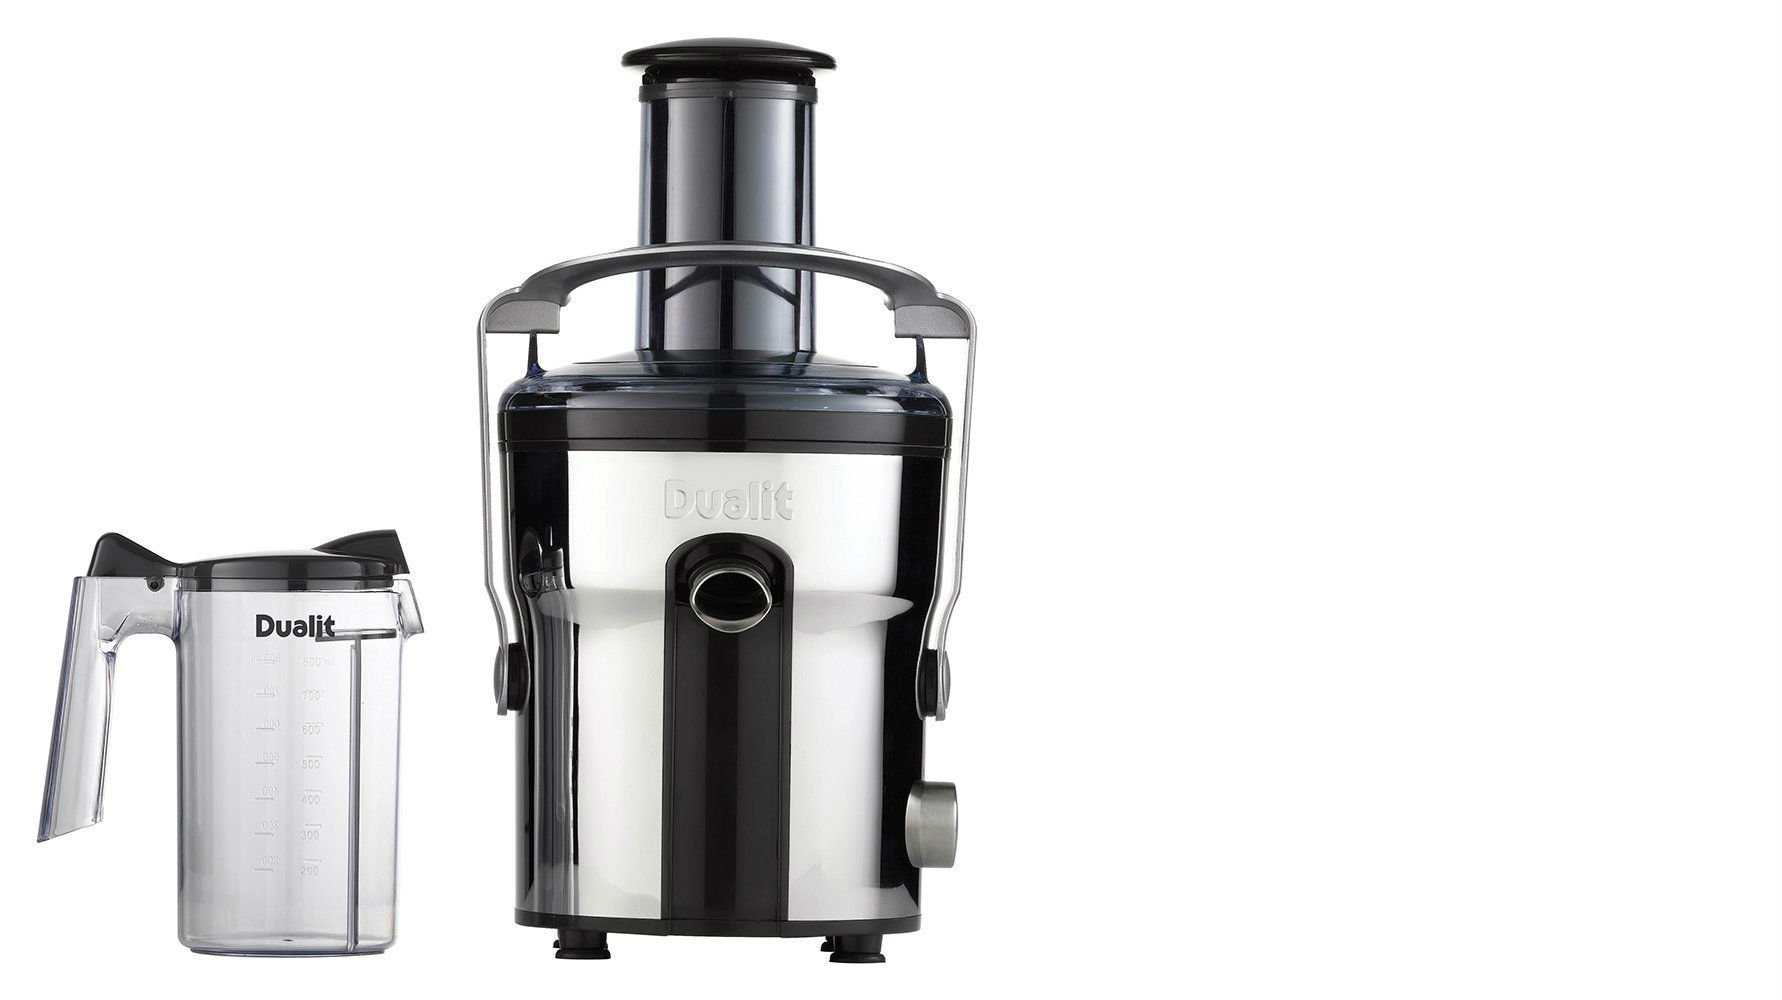 Watch So You Want to Buy a Juicer Let Us Talk You Through the Basics video